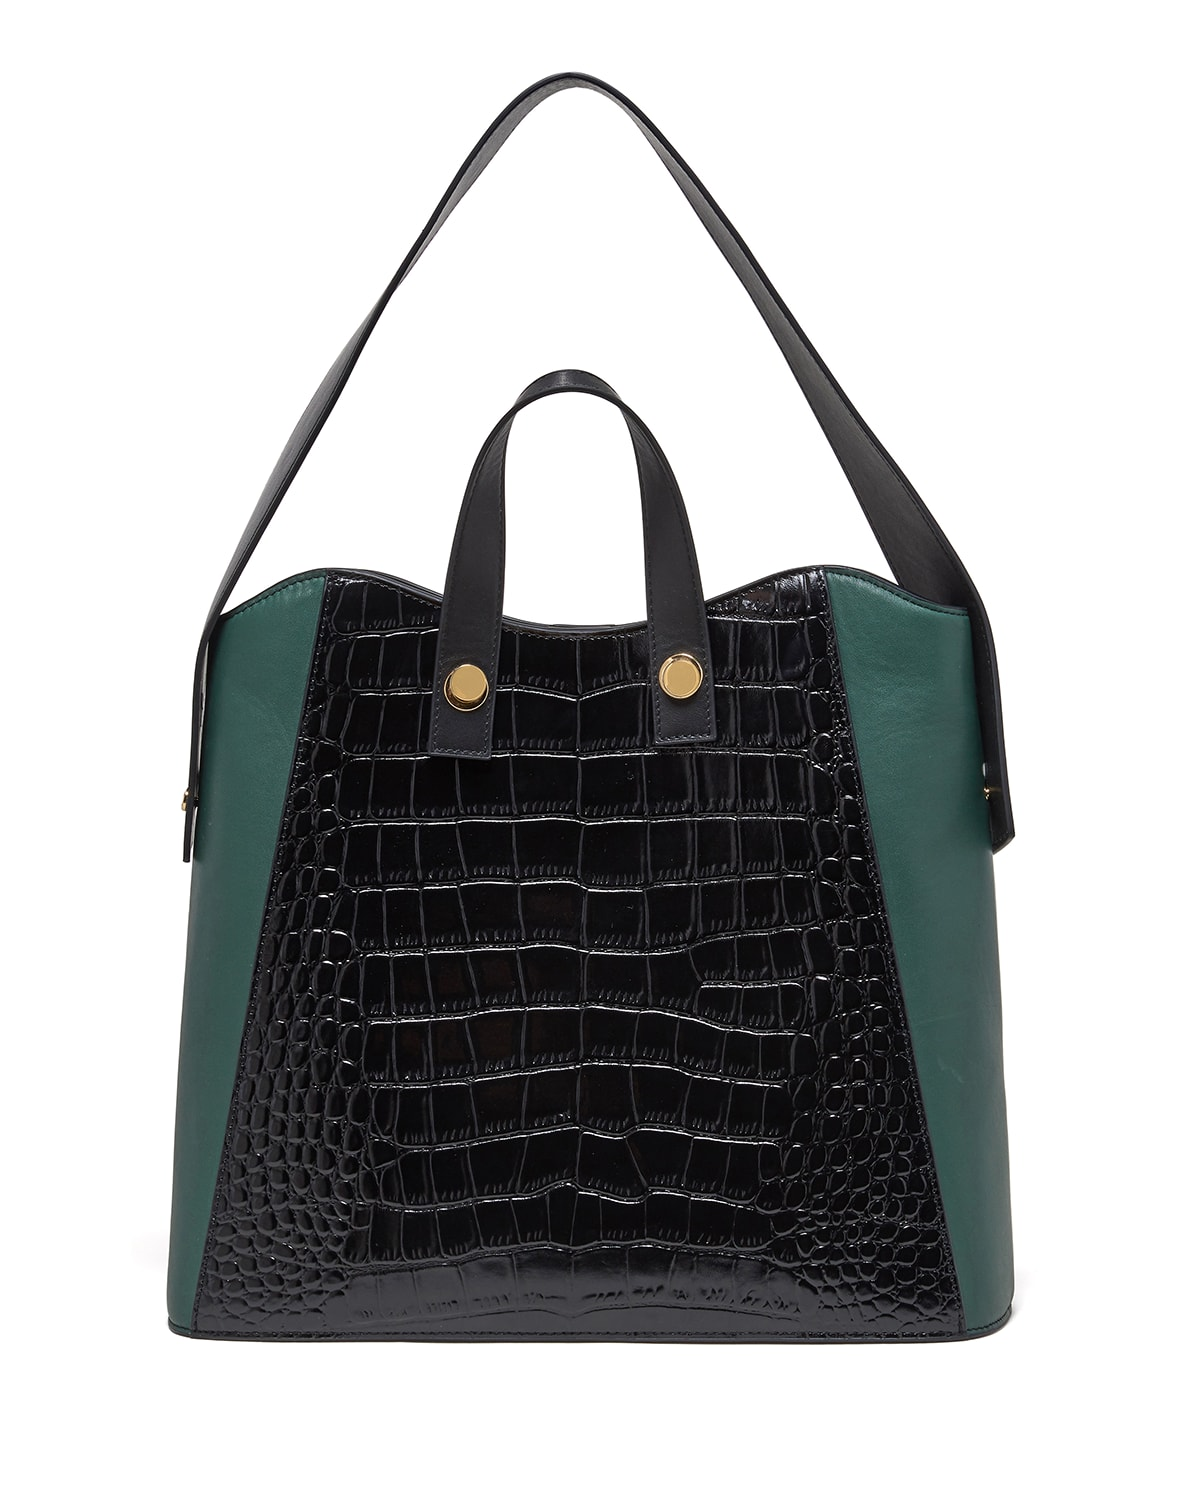 Friday Small Croc-Embossed Leather Shopper Tote Bag